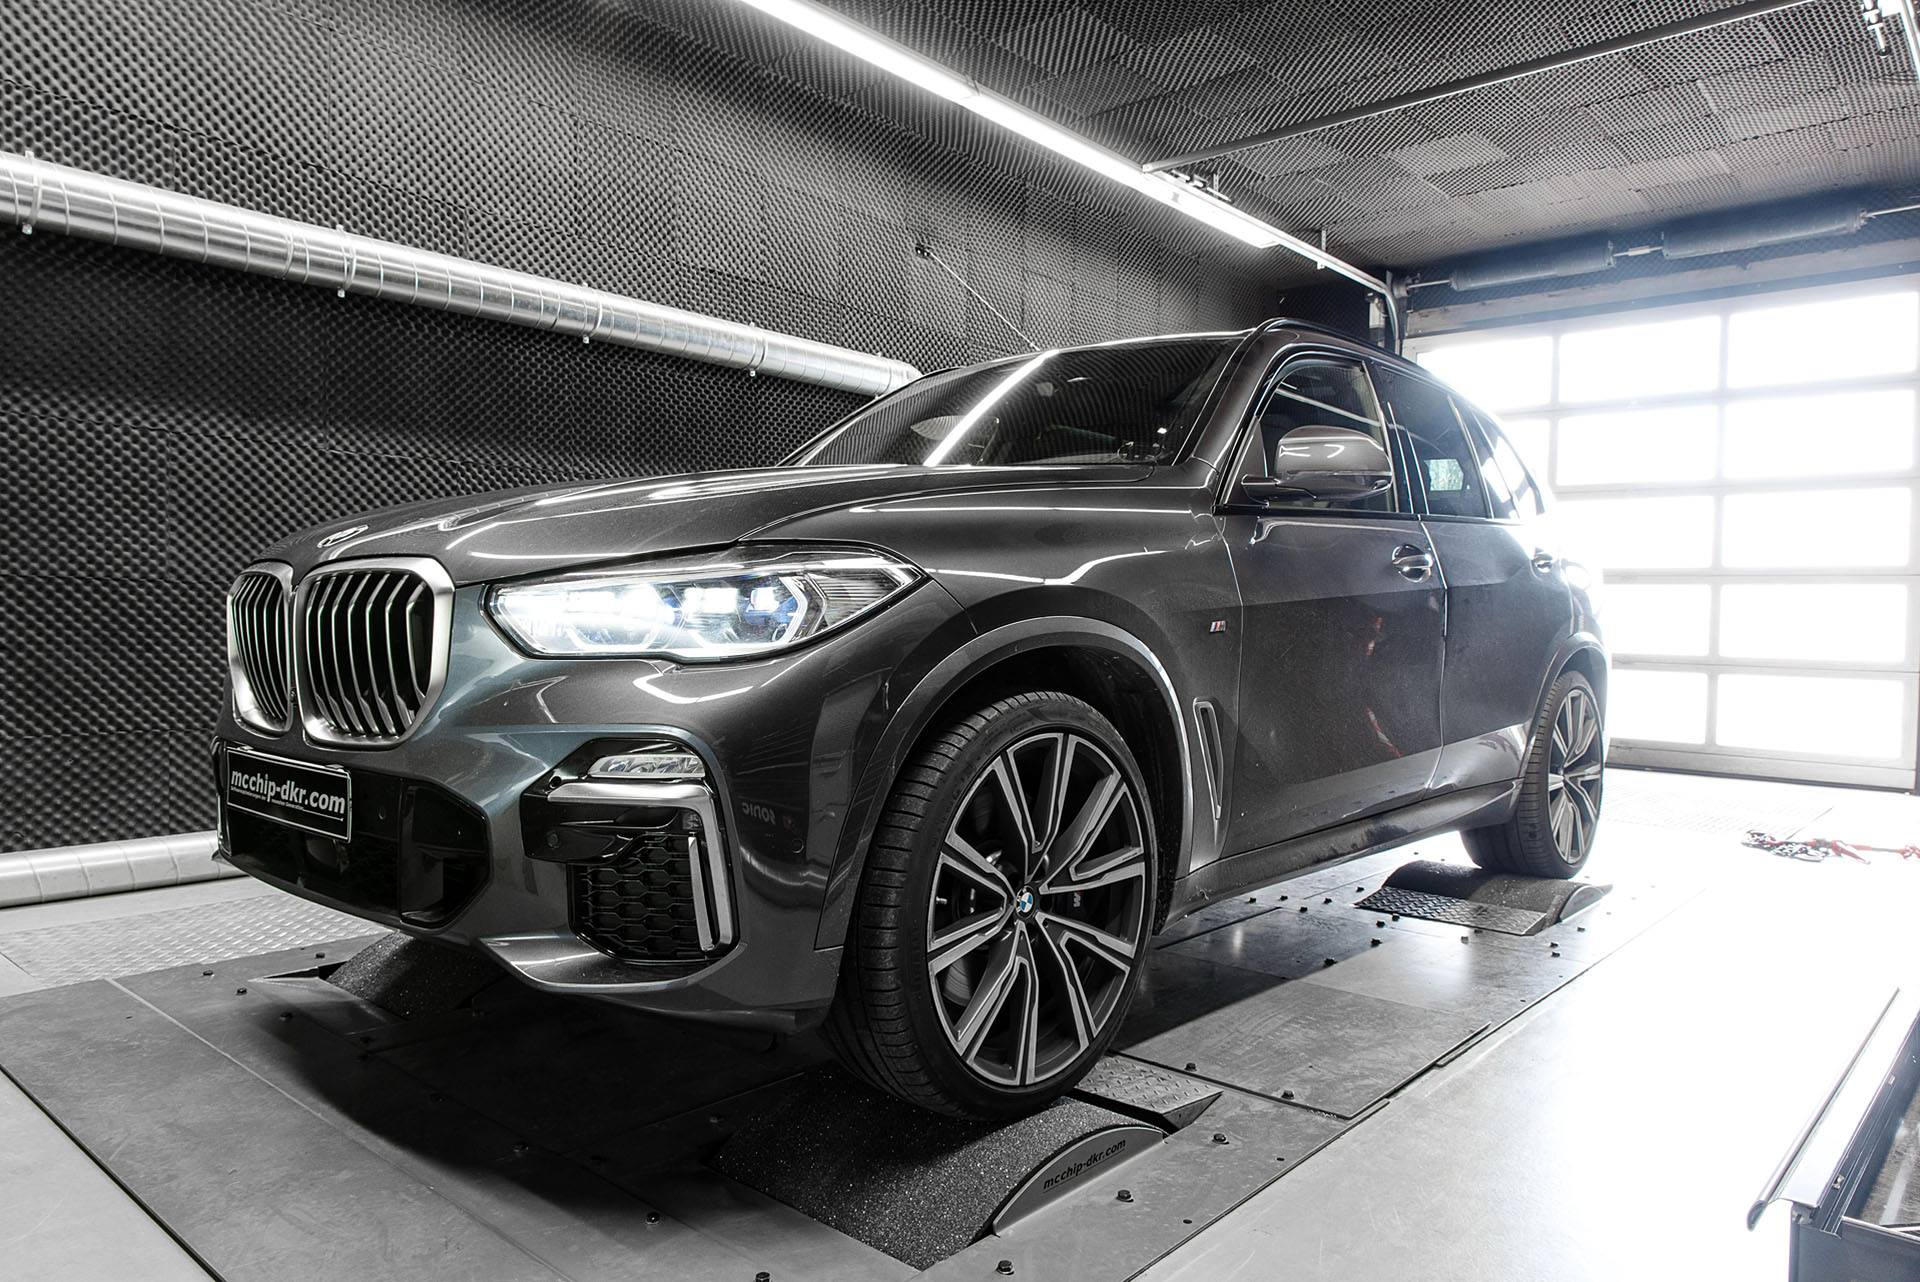 BMW X5 M50d by Mcchip DKR (1)